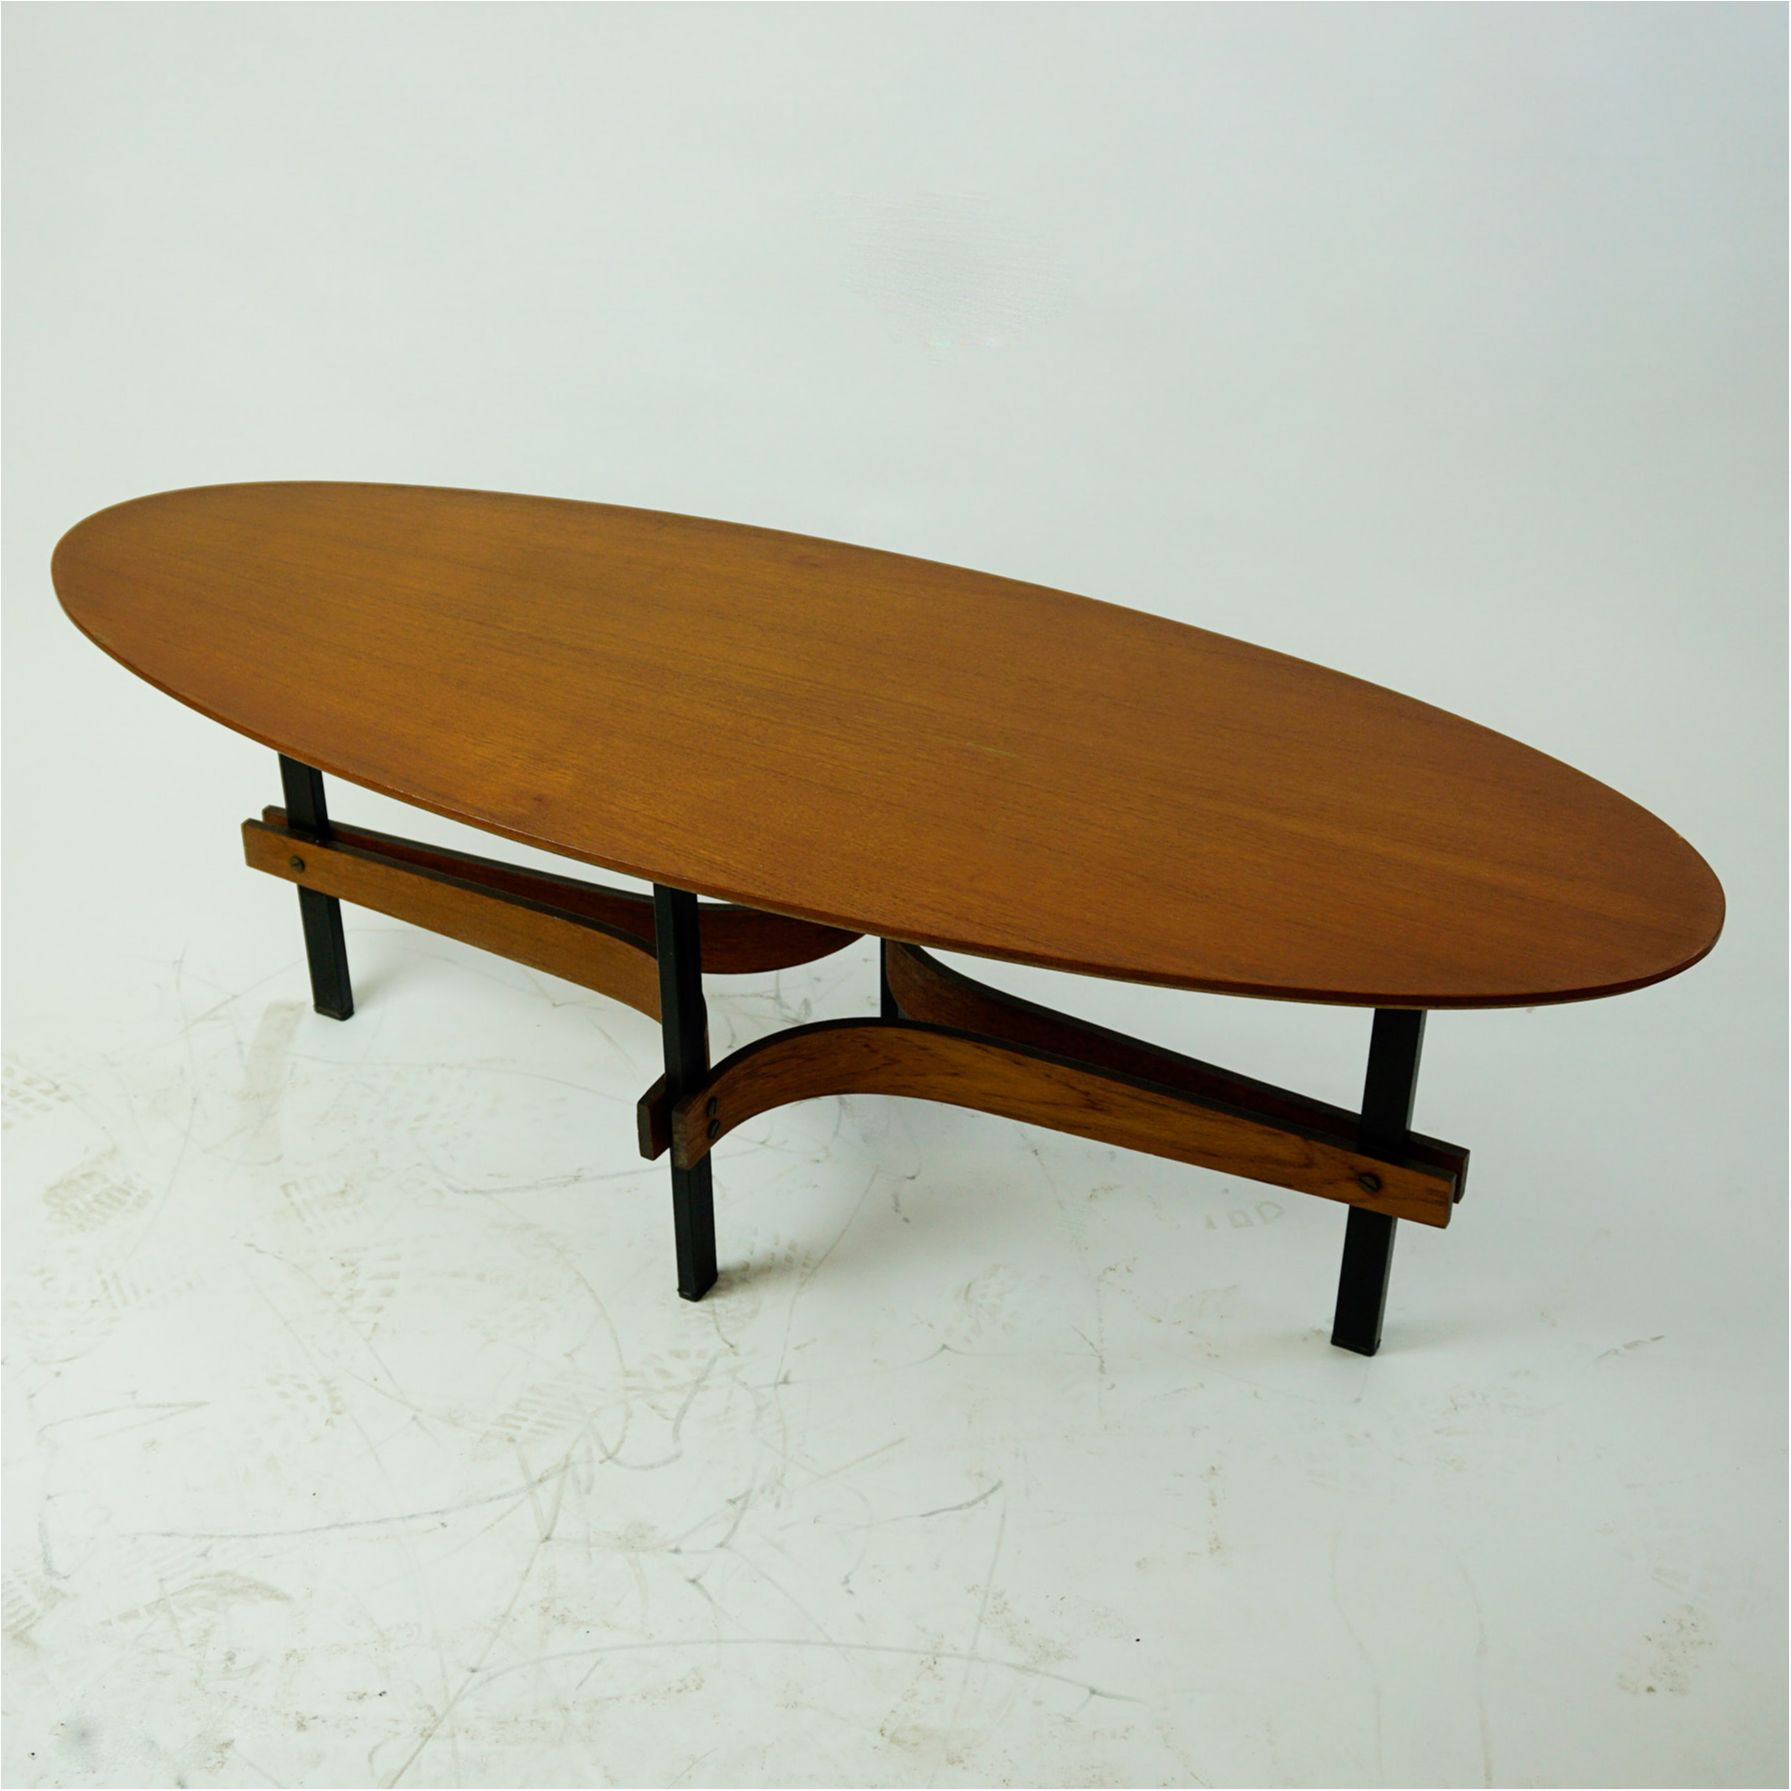 Italian Midcentury Oval Teak And Metal Coffee Table